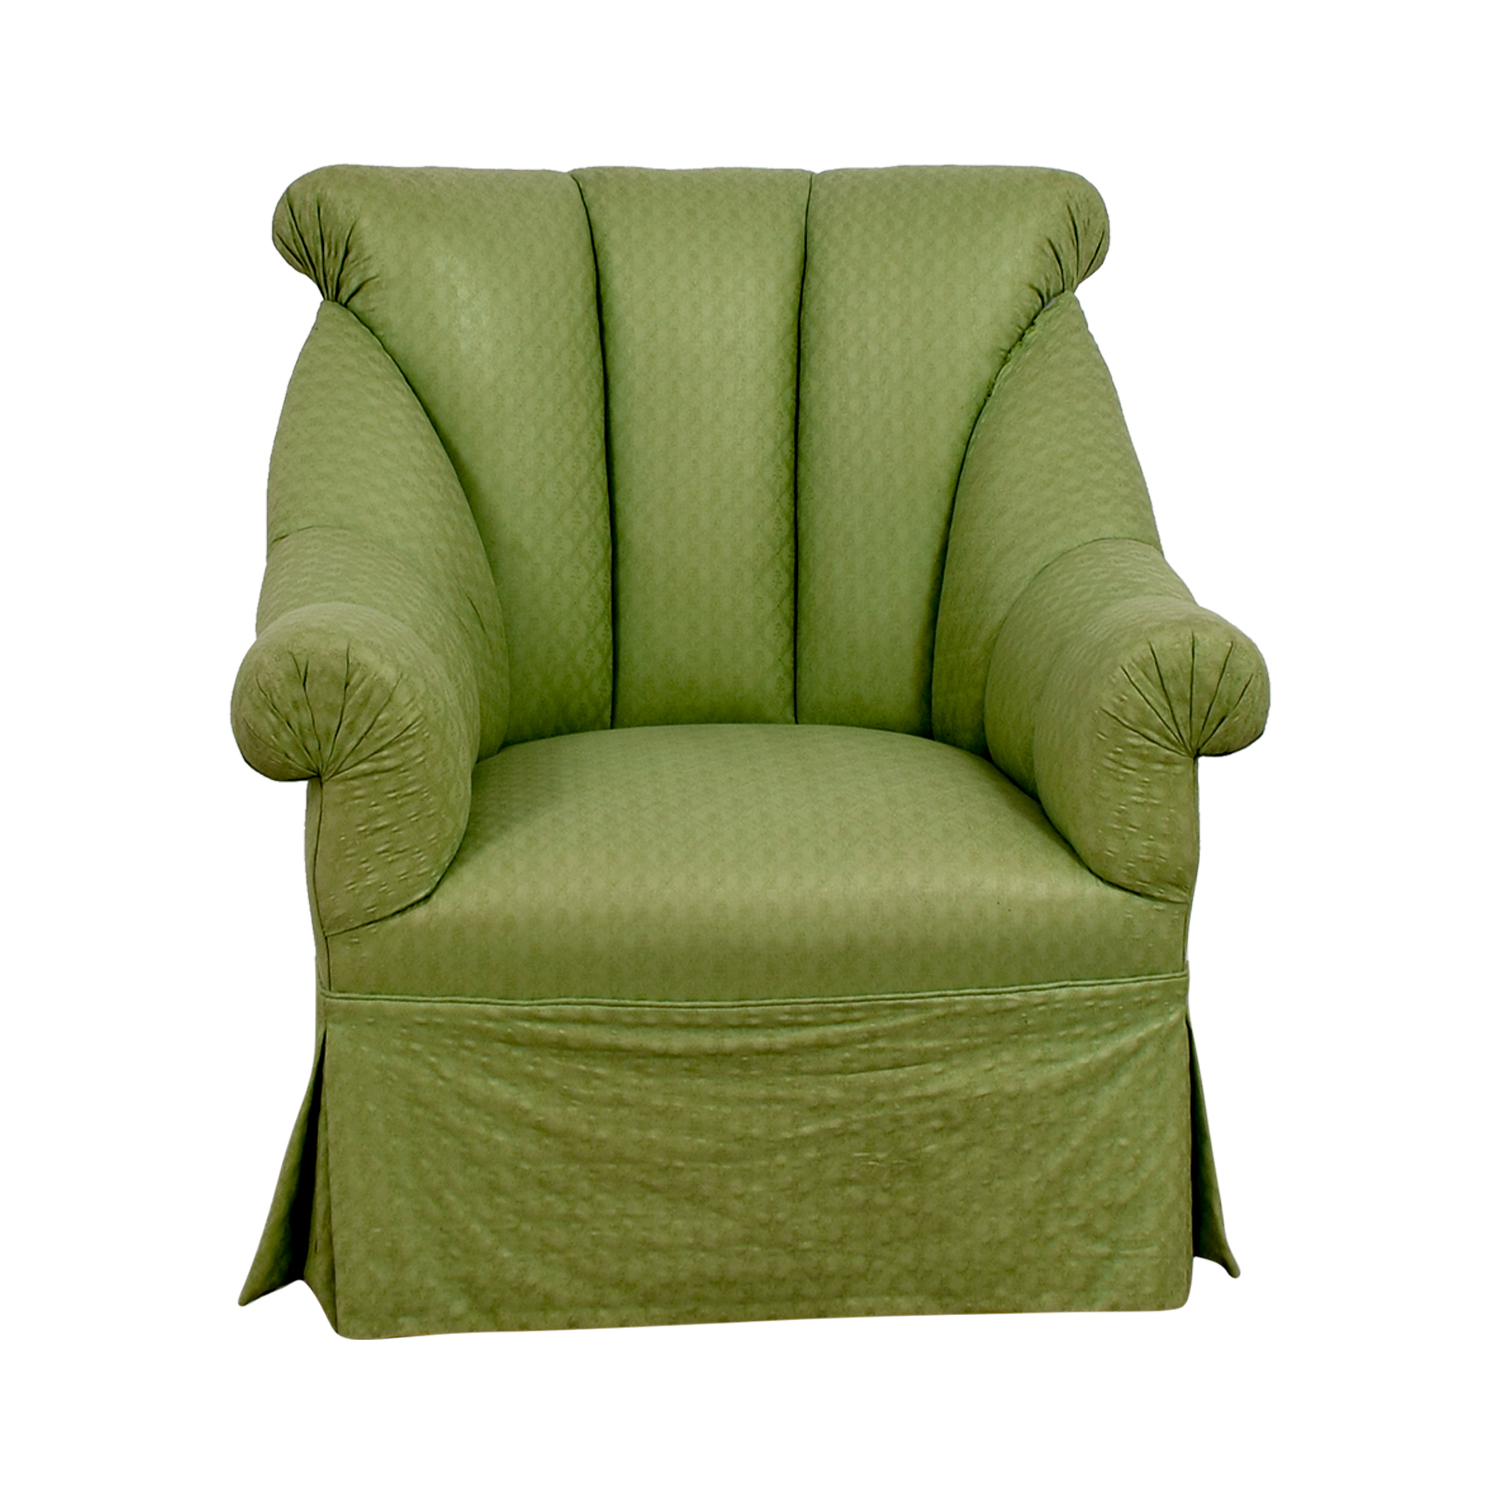 Furniture Masters Furniture Masters Green Skirted Armchair on sale